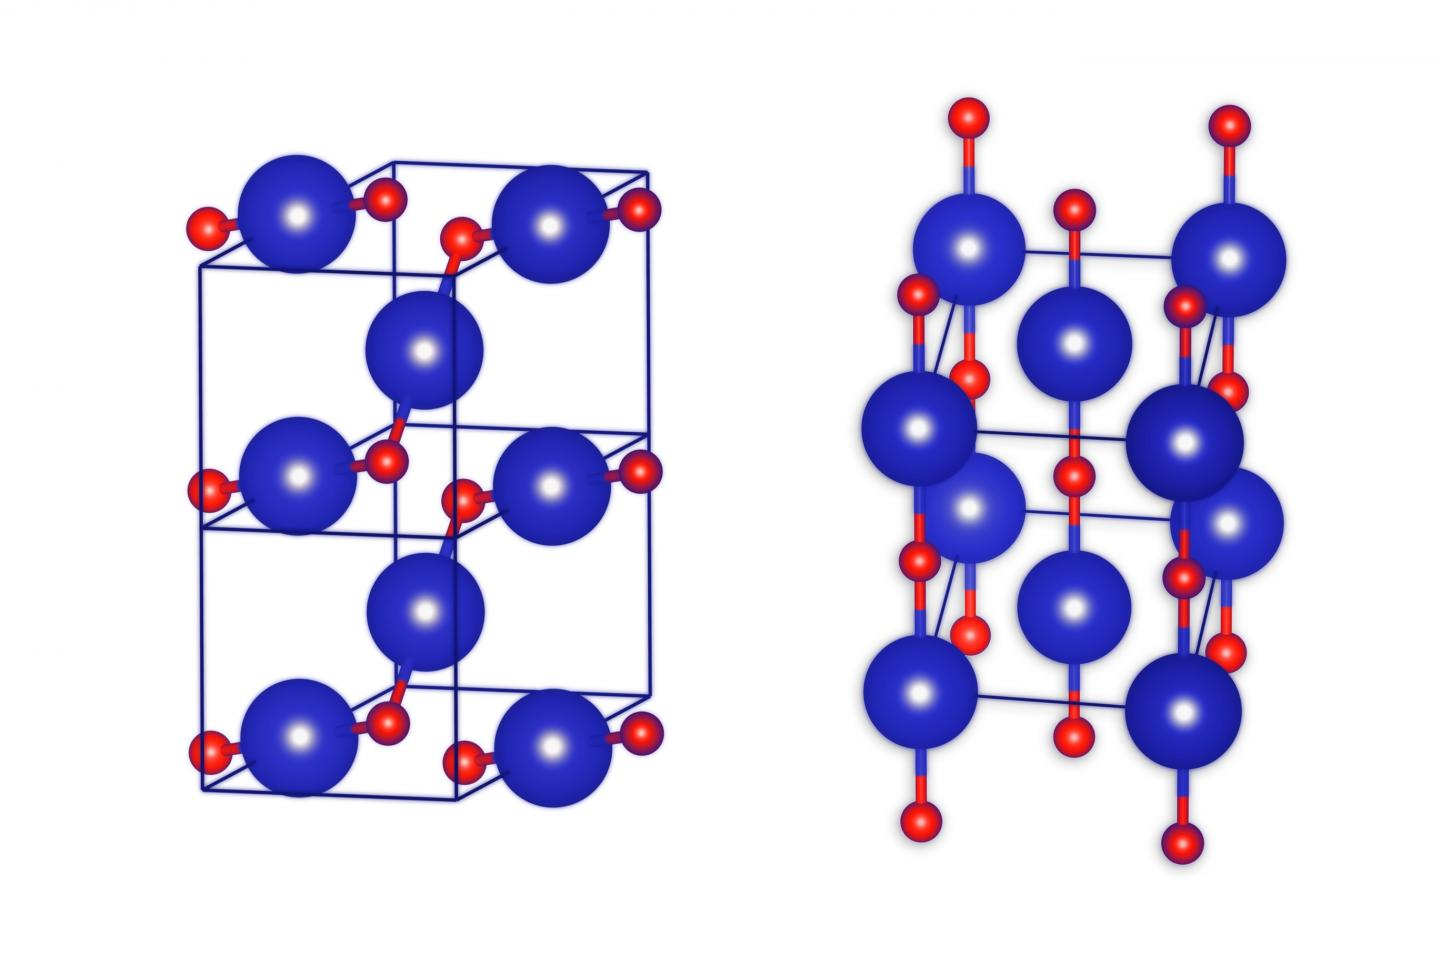 This image shows the crystal structures of krypton monoxide KrO: more stable on the left, less stable on the right. Krypton atoms coloured blue, oxygen atoms coloured red. Credit: IPC PAS